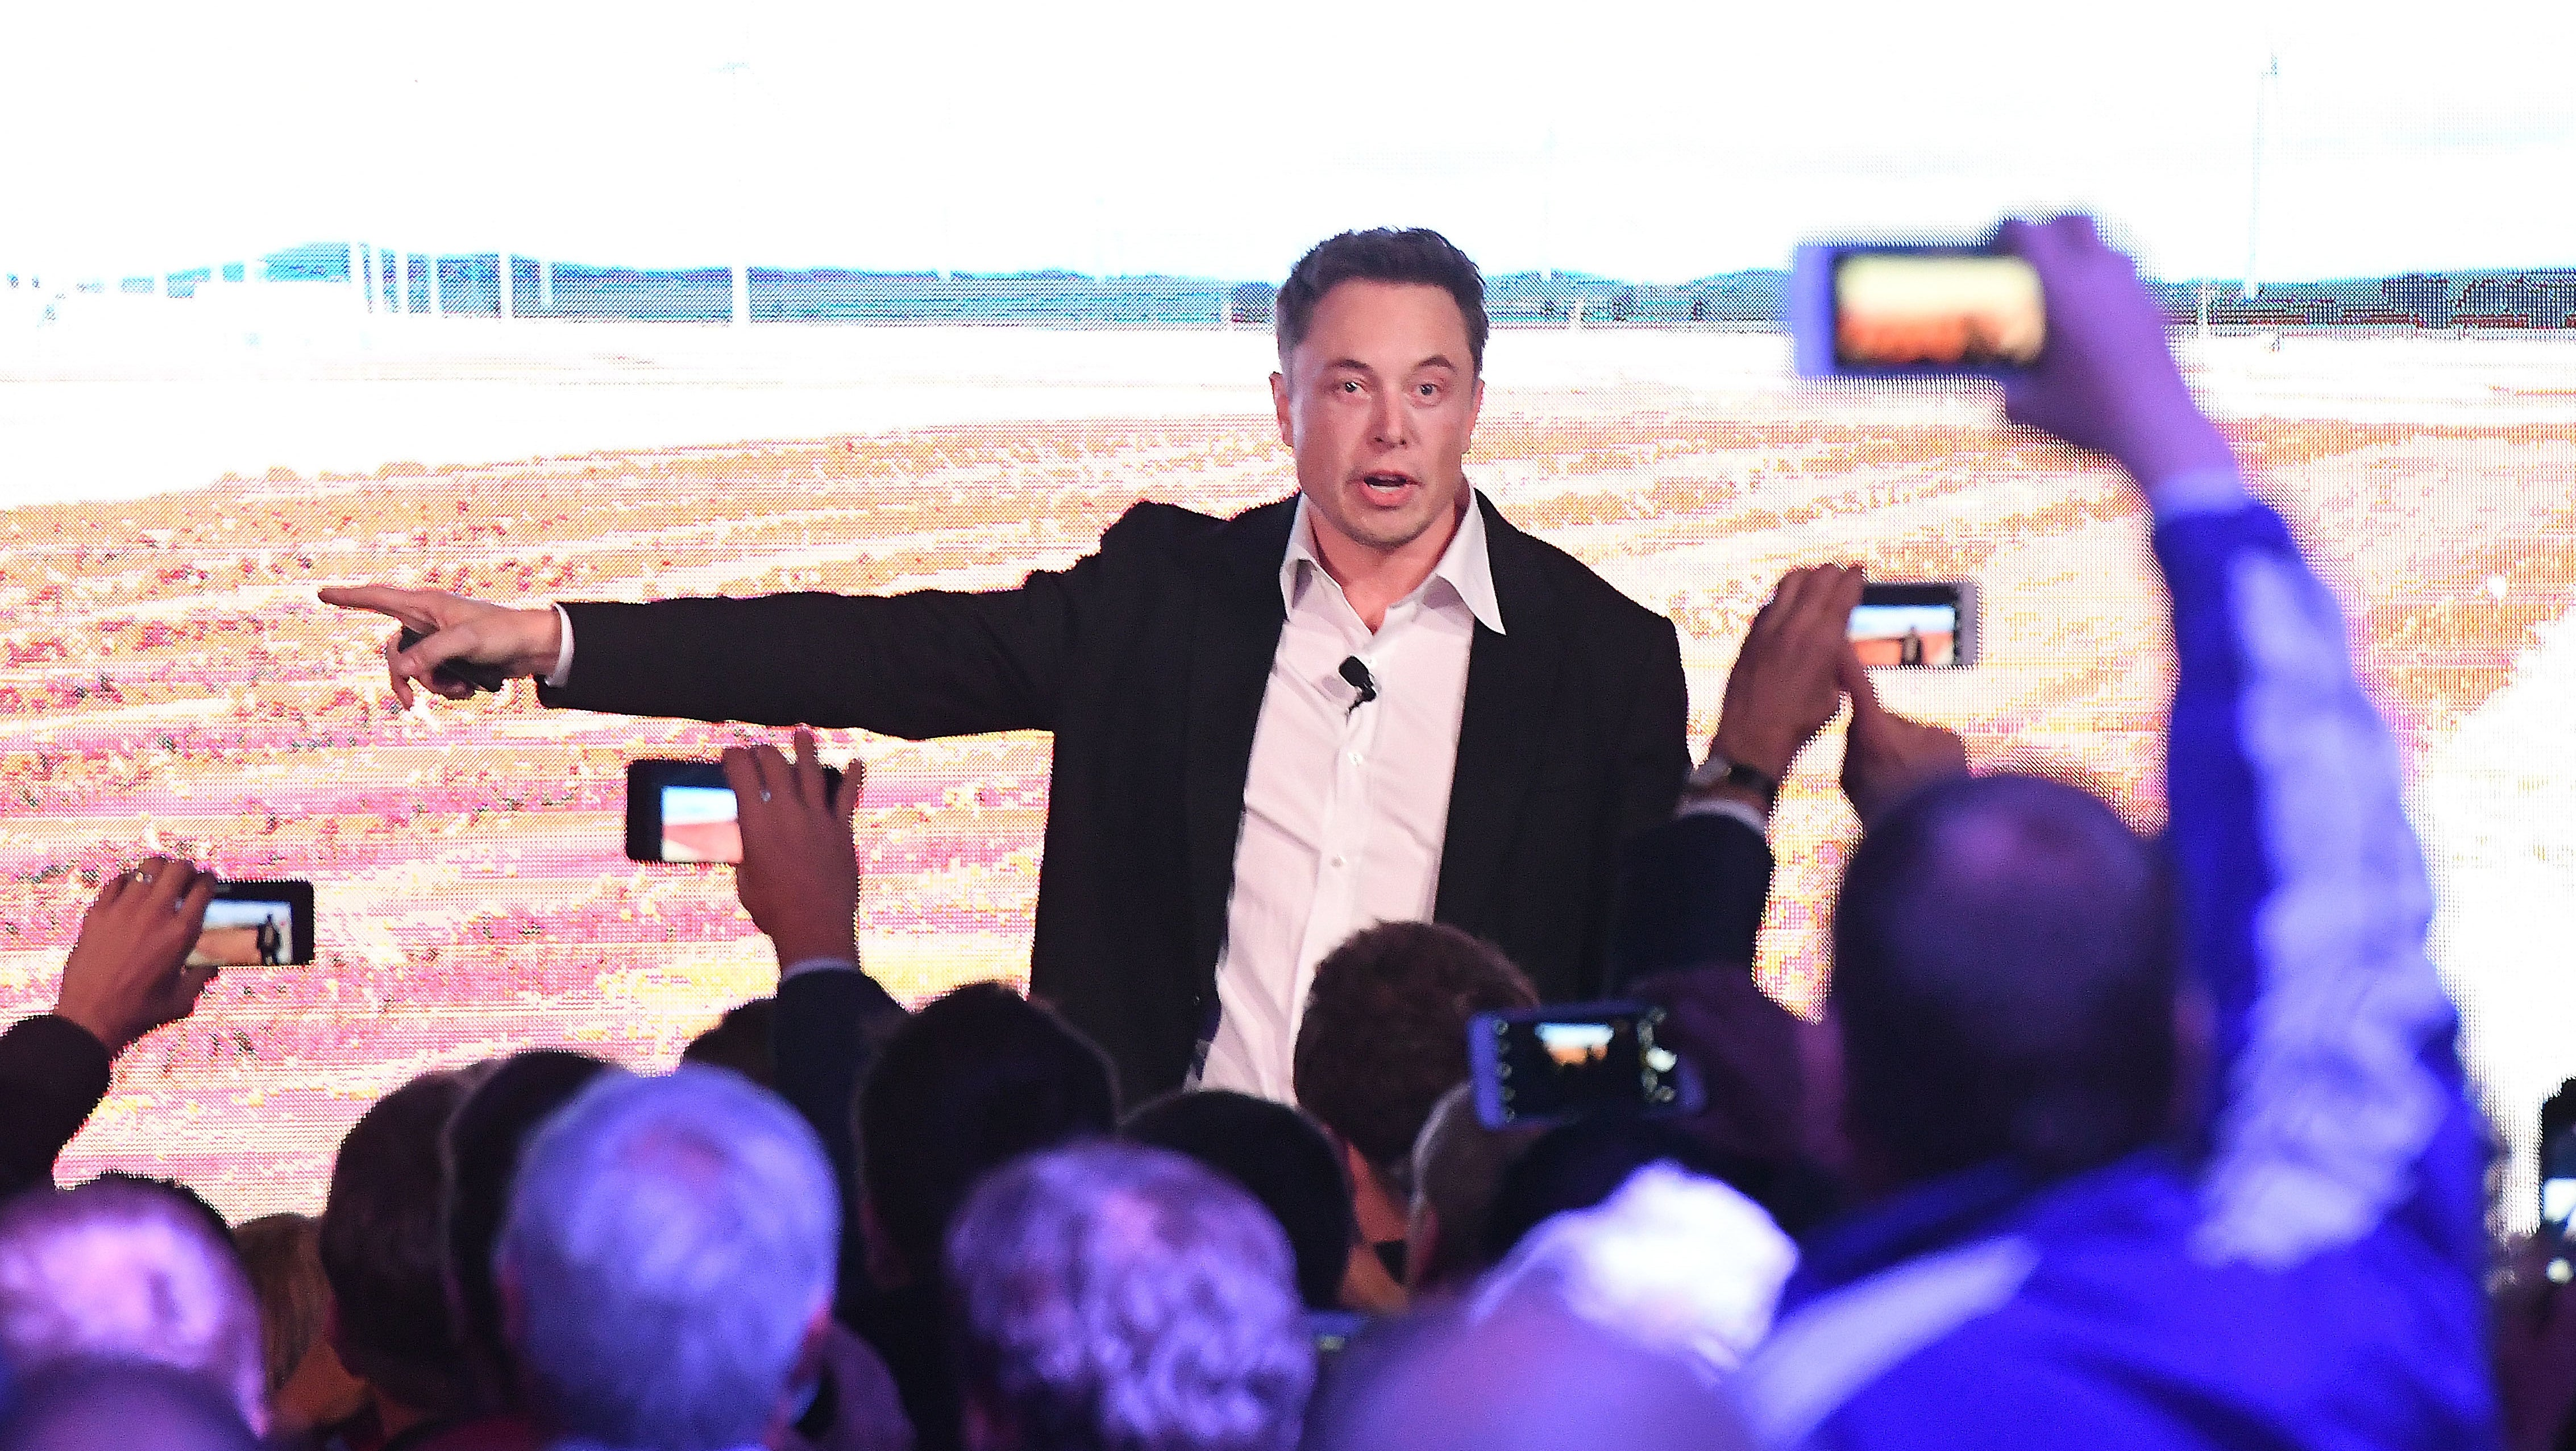 Report: Elon Musk Dragged The Sierra Club Into Helping Him On Twitter And It Didn't End Well